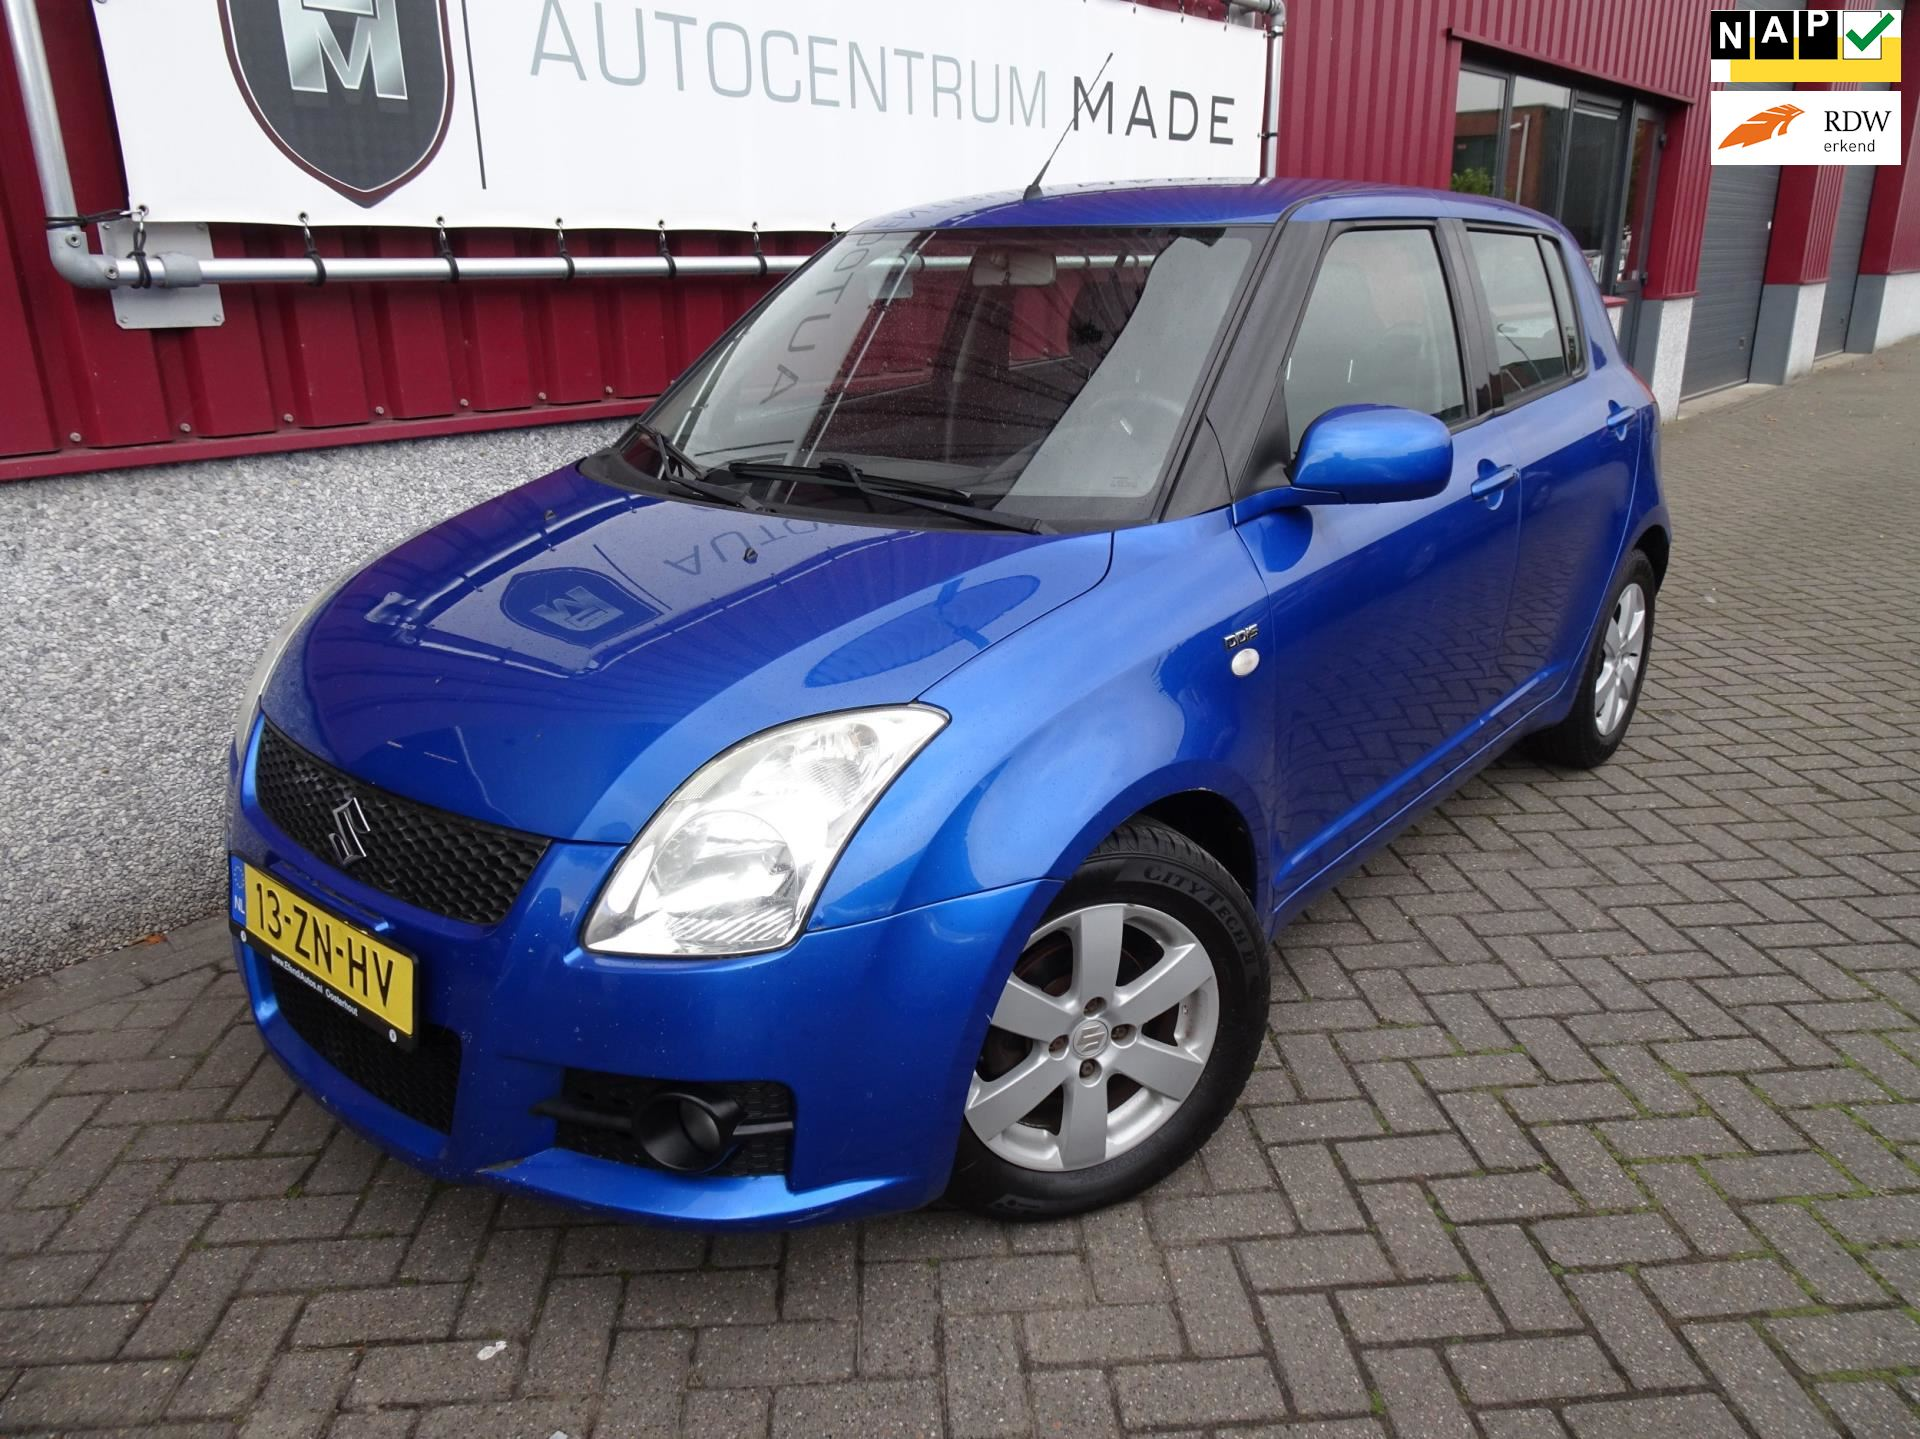 Suzuki Swift occasion - Auto Centrum Made